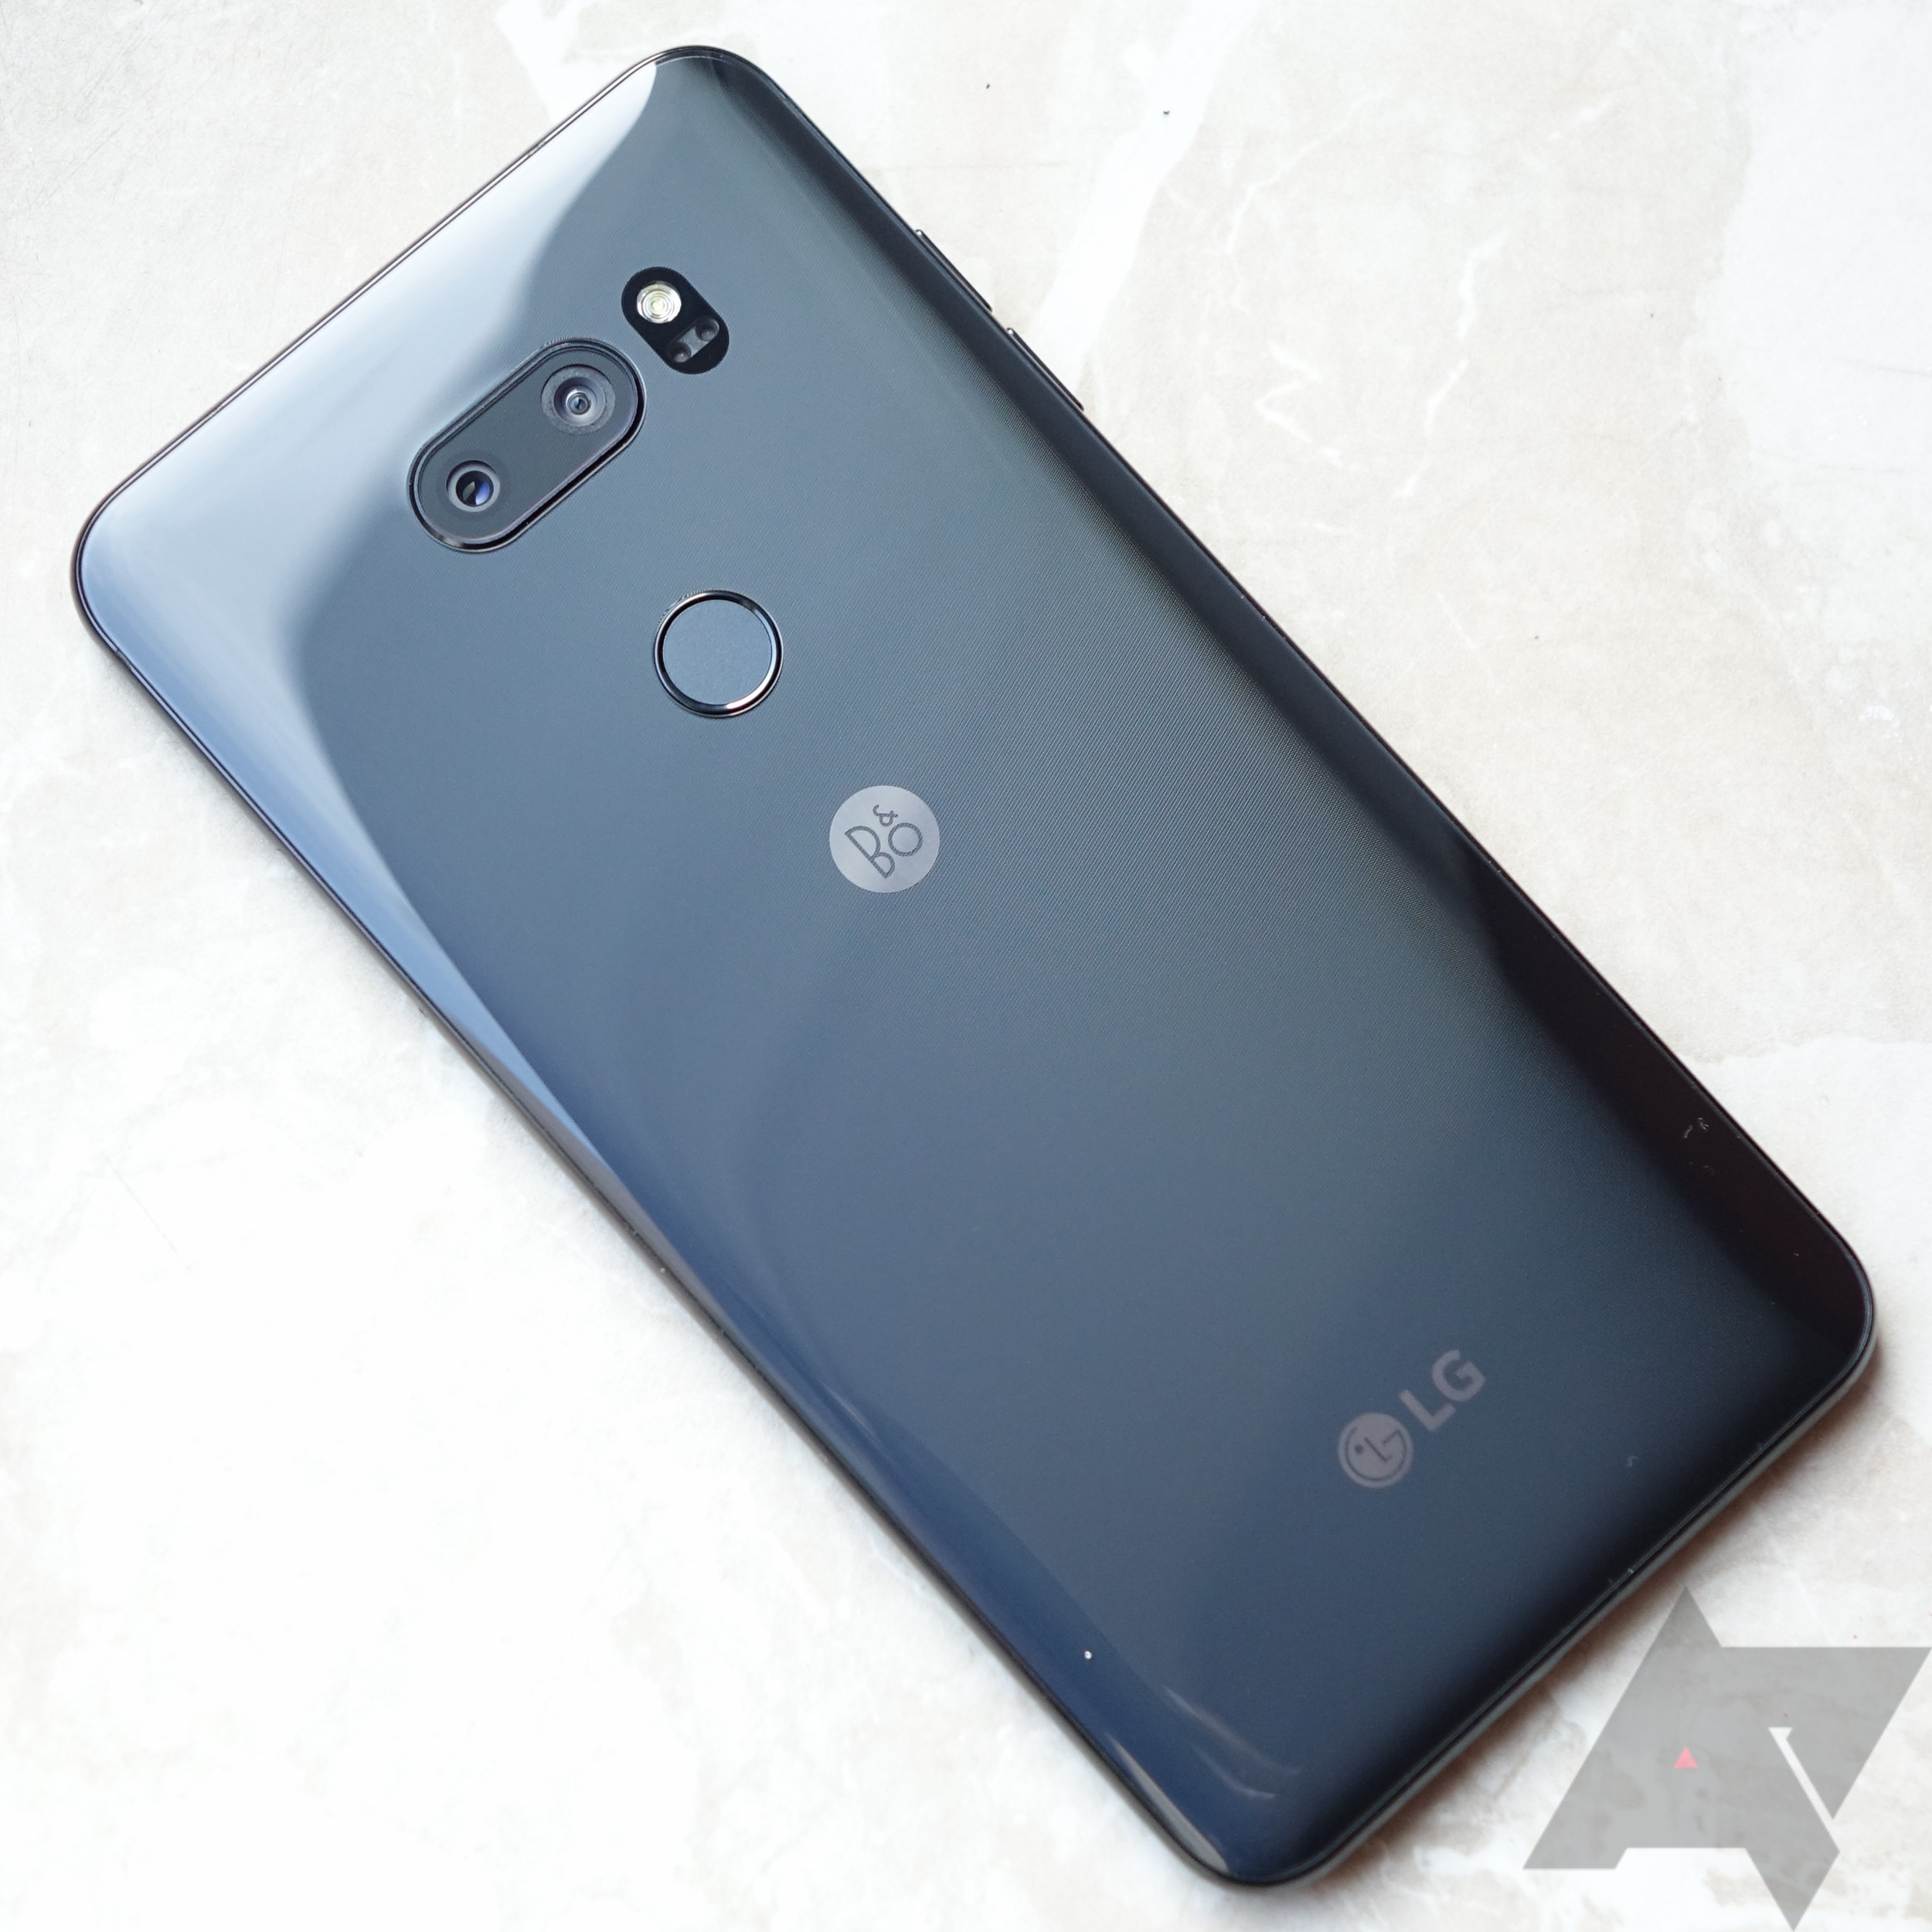 LG V30 first impressions: A bigger and very noticeably better G6